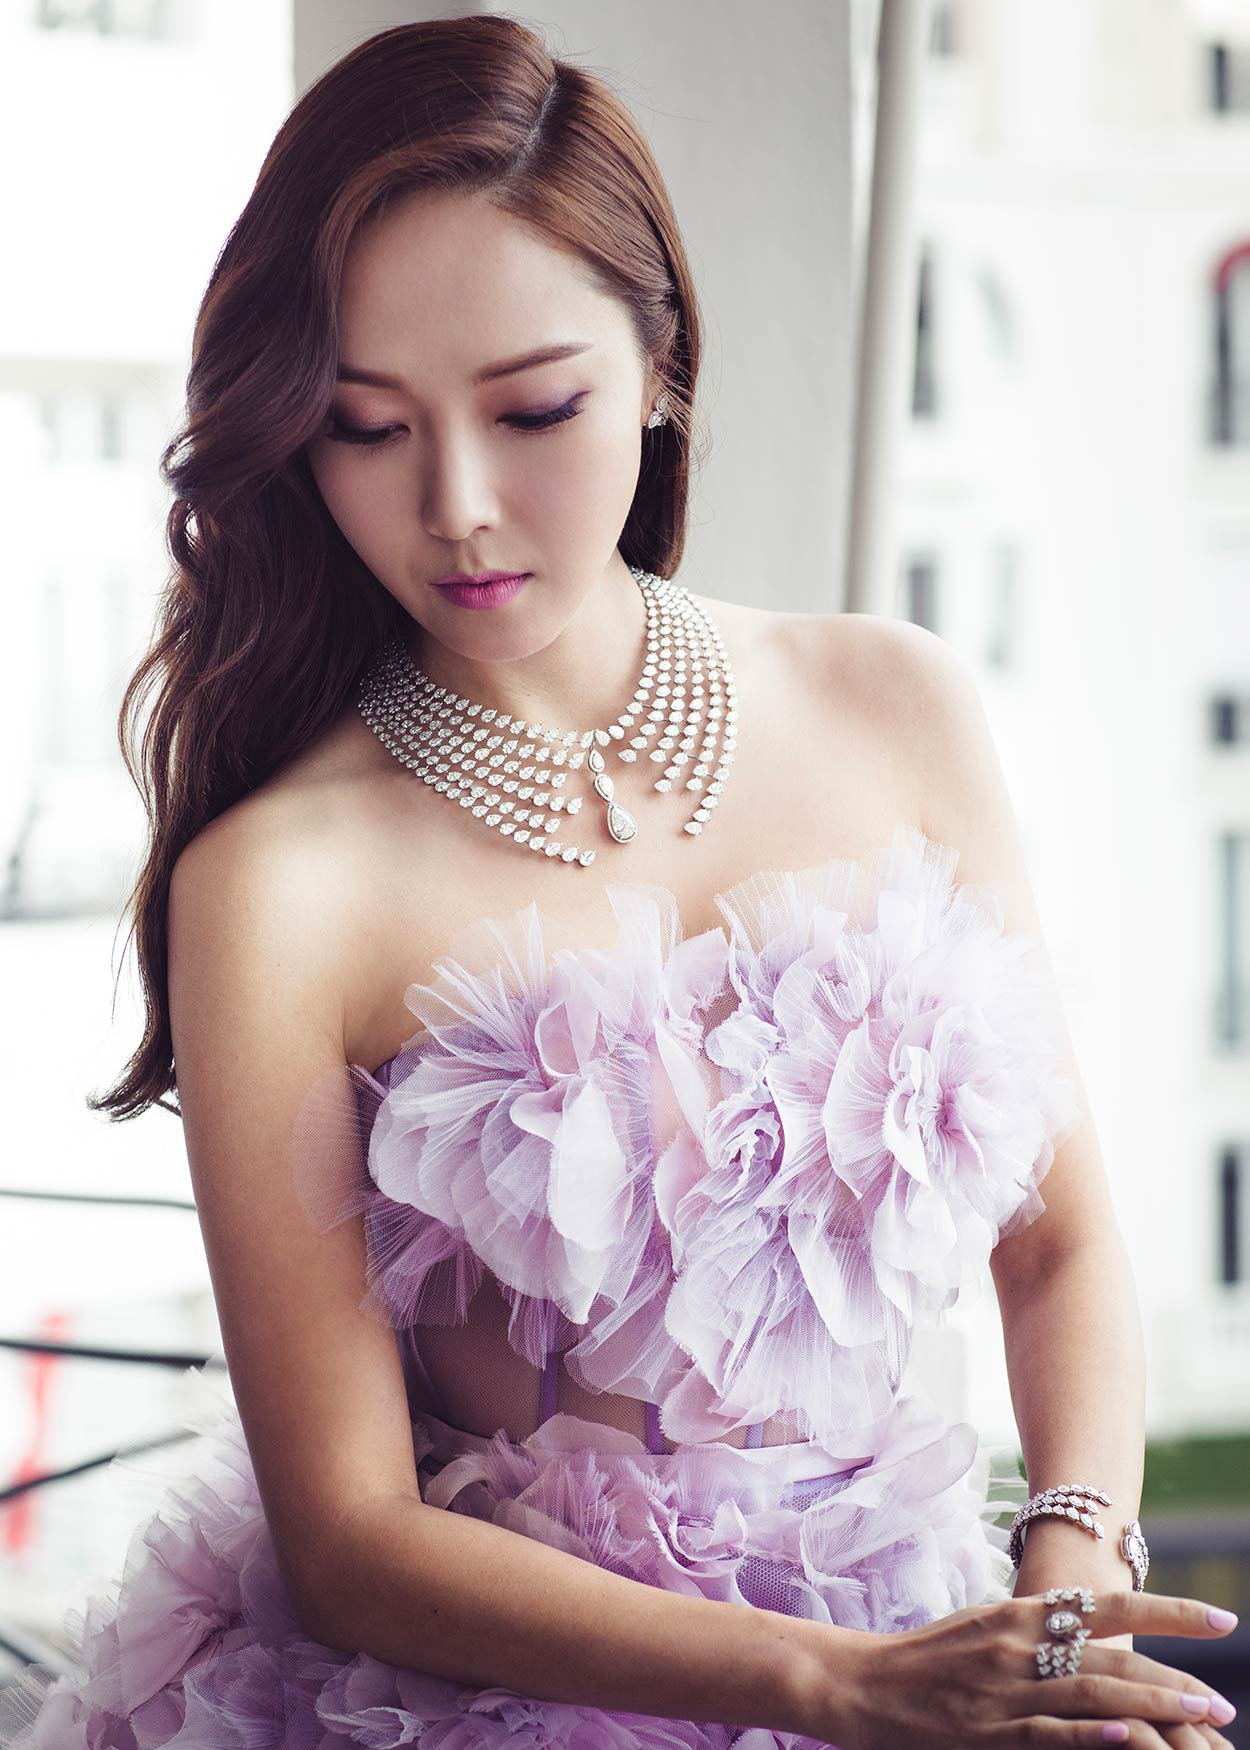 Forum on this topic: Kiara Advani, jessica-jung/